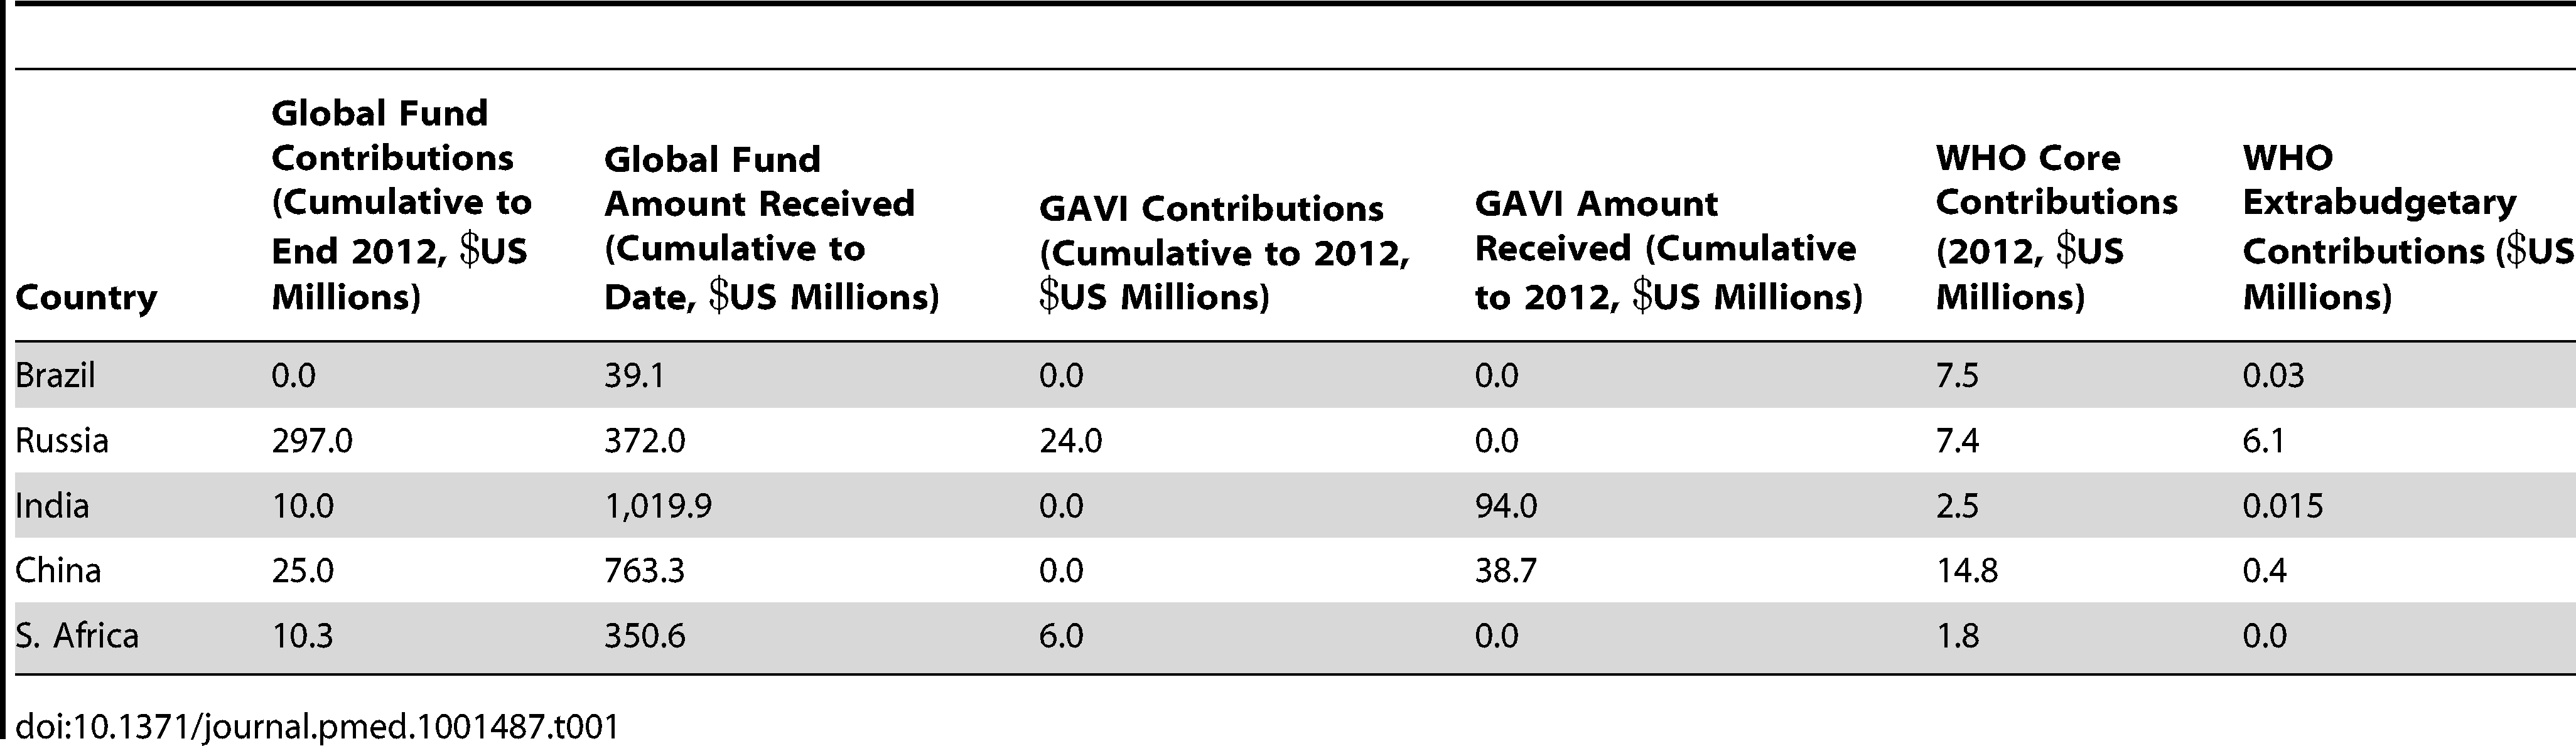 """BRIC financial contribution to key global health institutions and amount received from Global Fund and GAVI <em class=""""ref"""">[14]</em>–<em class=""""ref"""">[19]</em>."""